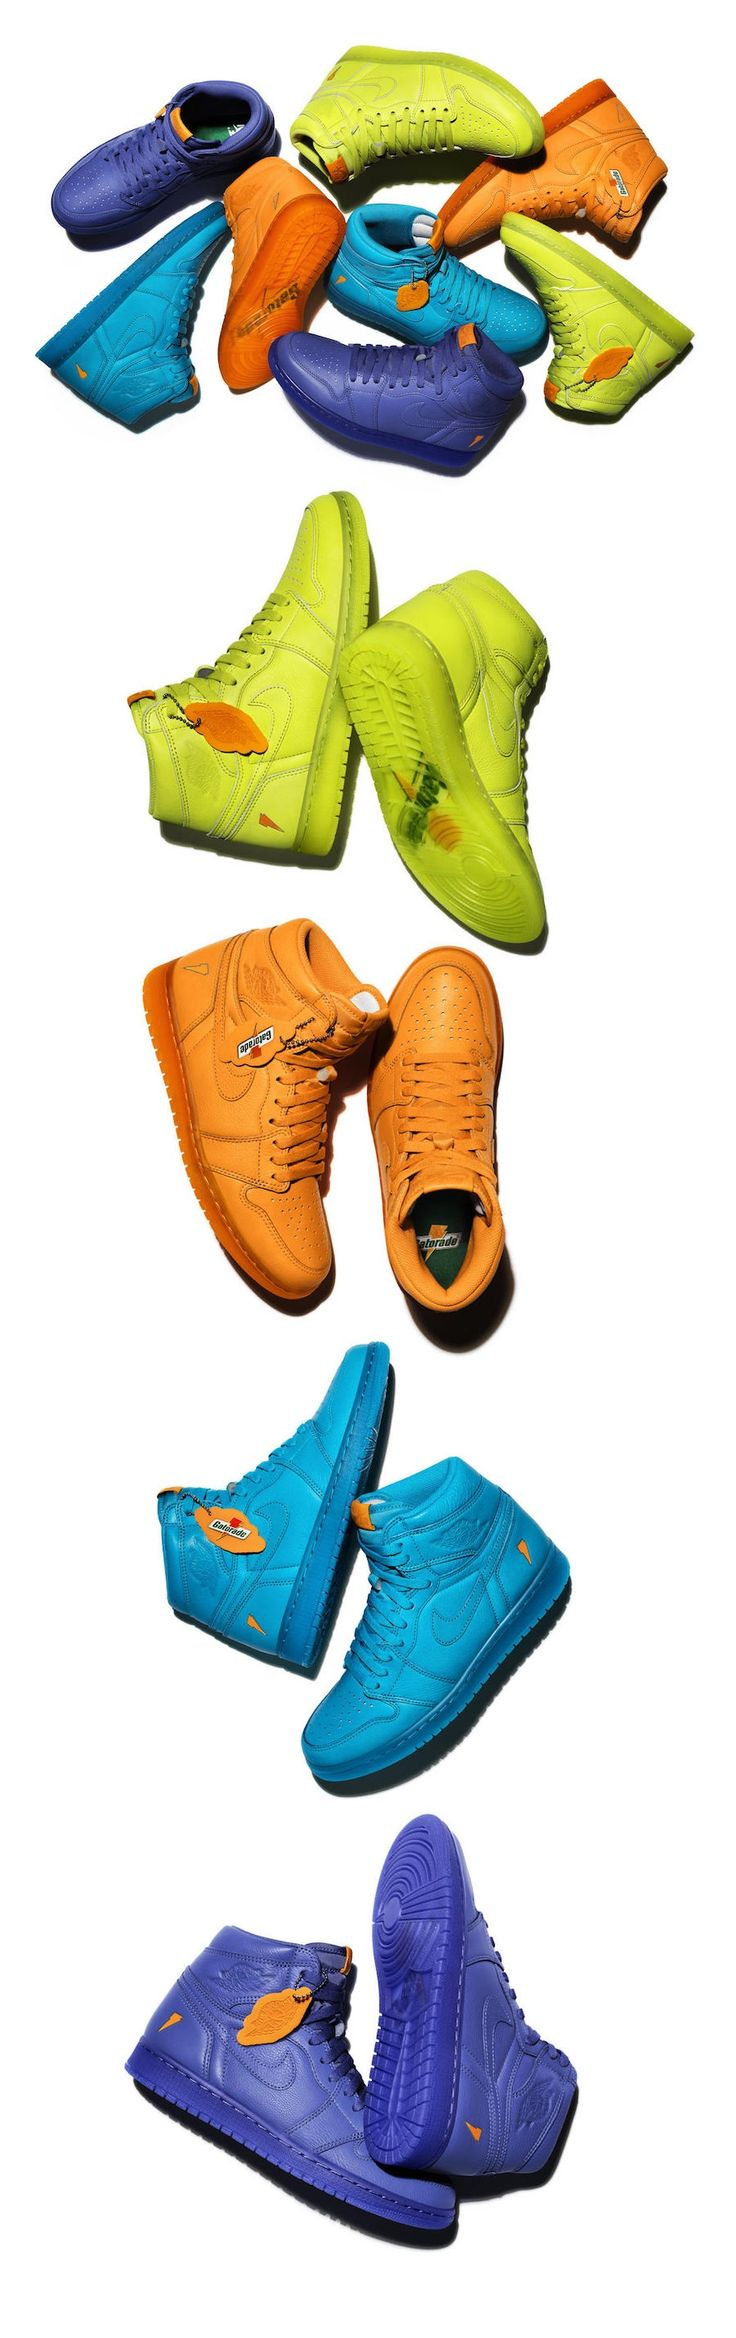 Sneaker Review: Air Jordan 1 Retro Gatorade Pack – Purchase Links #Gatorade #AirJordan #JordanBrand